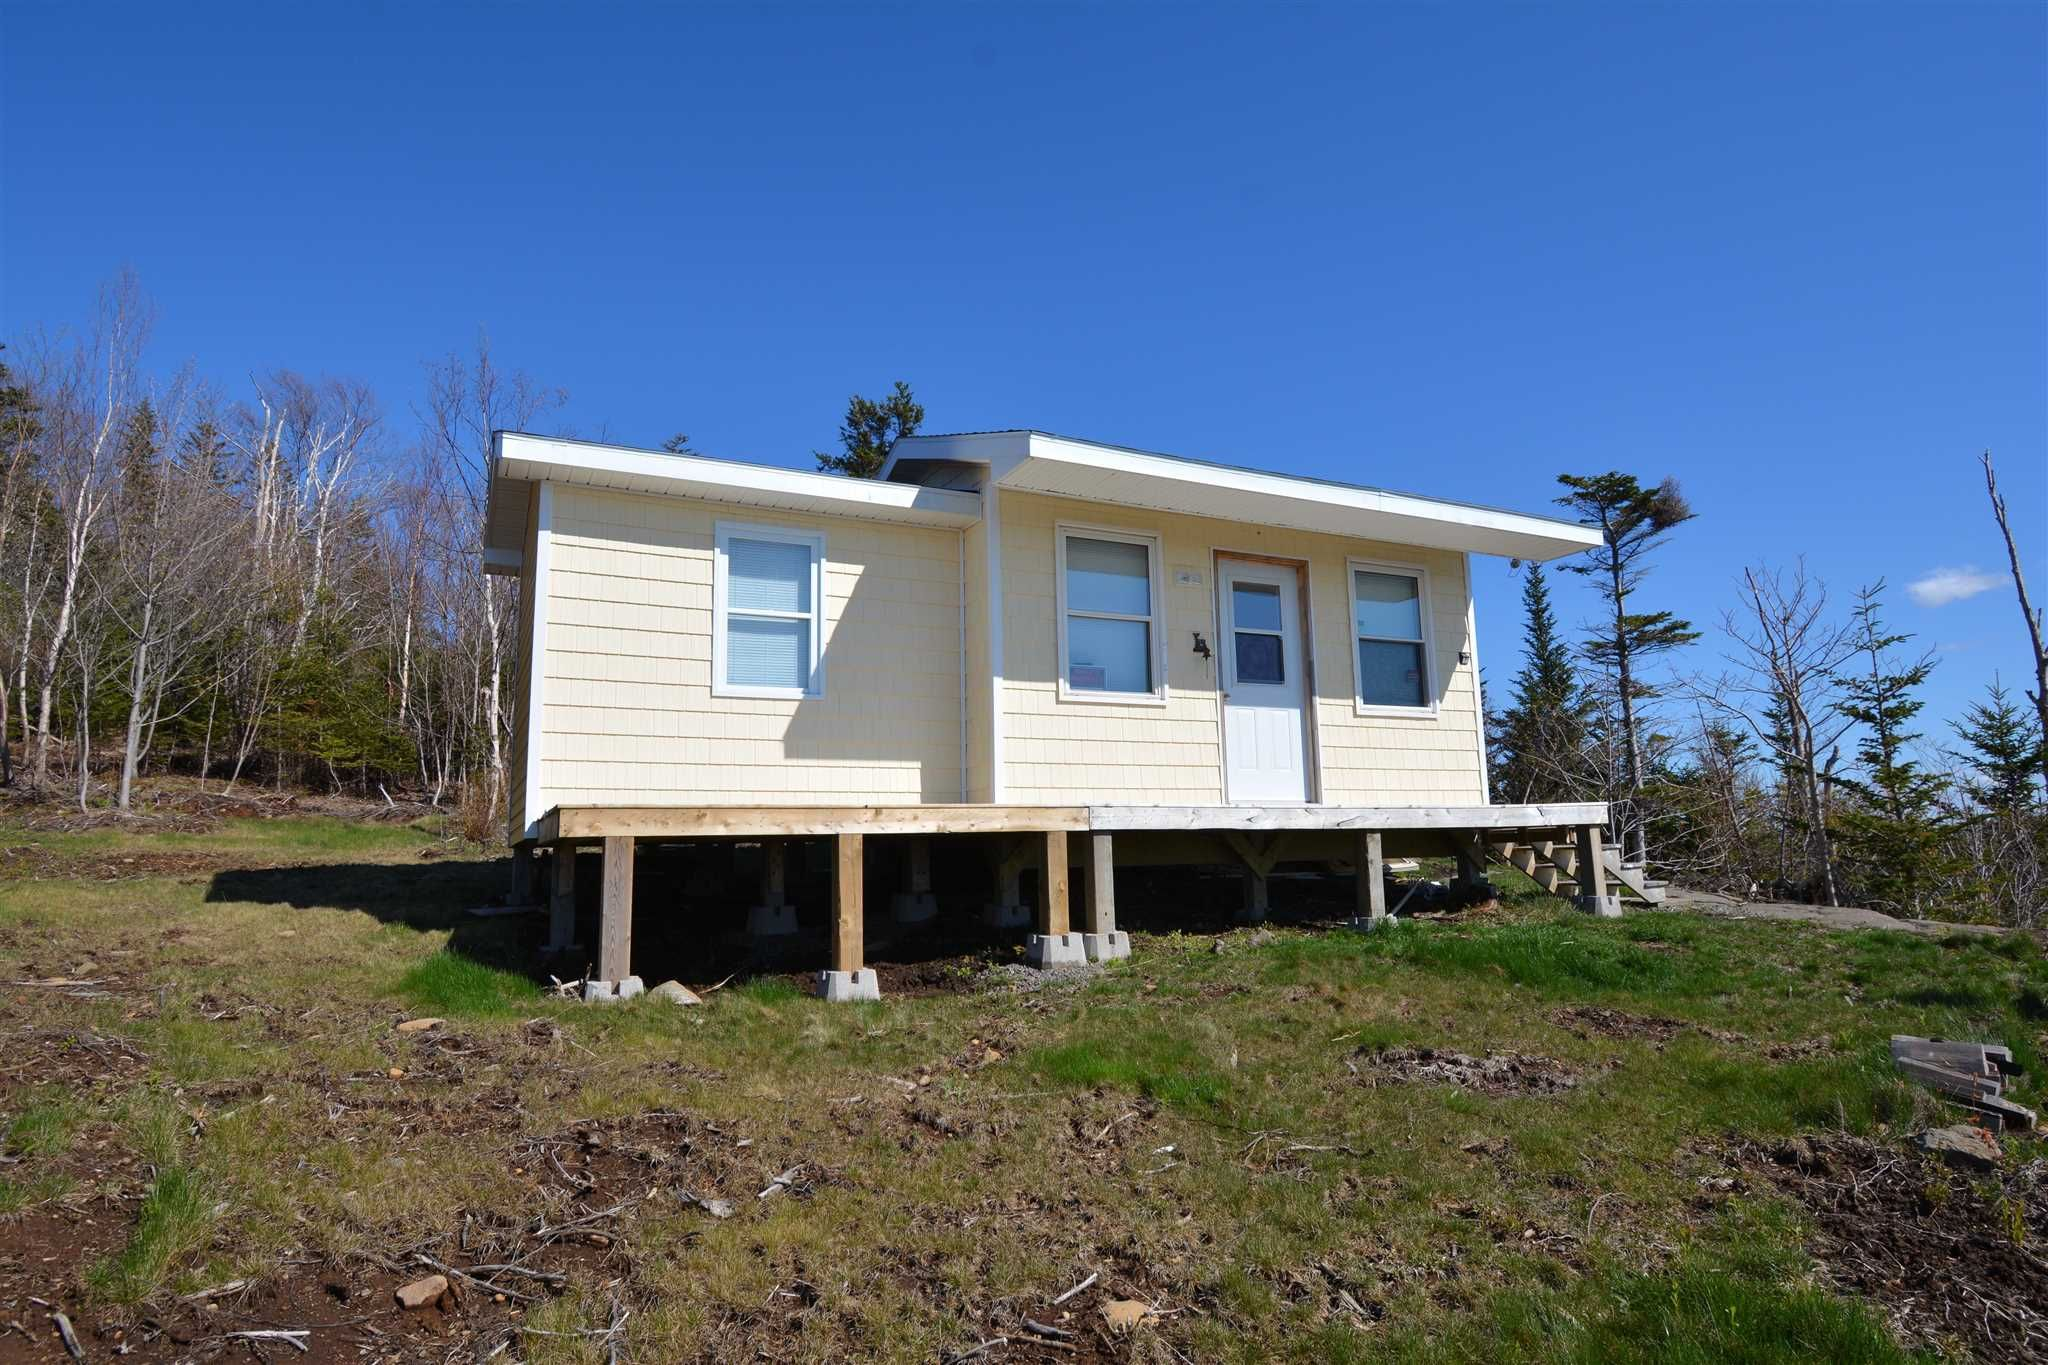 Main Photo: LOT Culloden Road in Culloden: 401-Digby County Residential for sale (Annapolis Valley)  : MLS®# 202111278